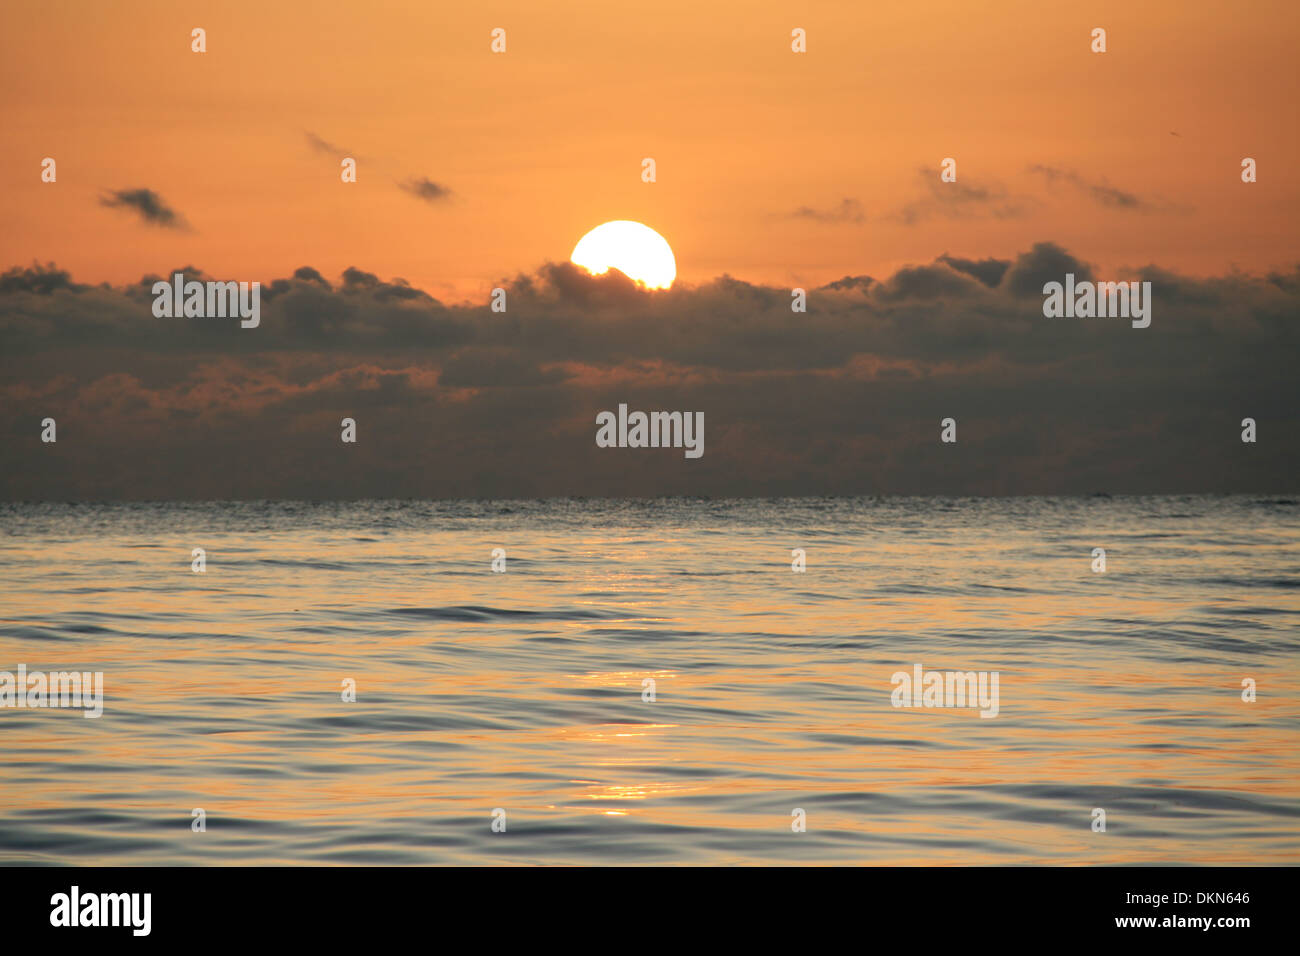 sun rises in cloudy horizon at Caspian sea,Iran;and golden reflection,in early morning is nice.another day is beginning.Soothing - Stock Image